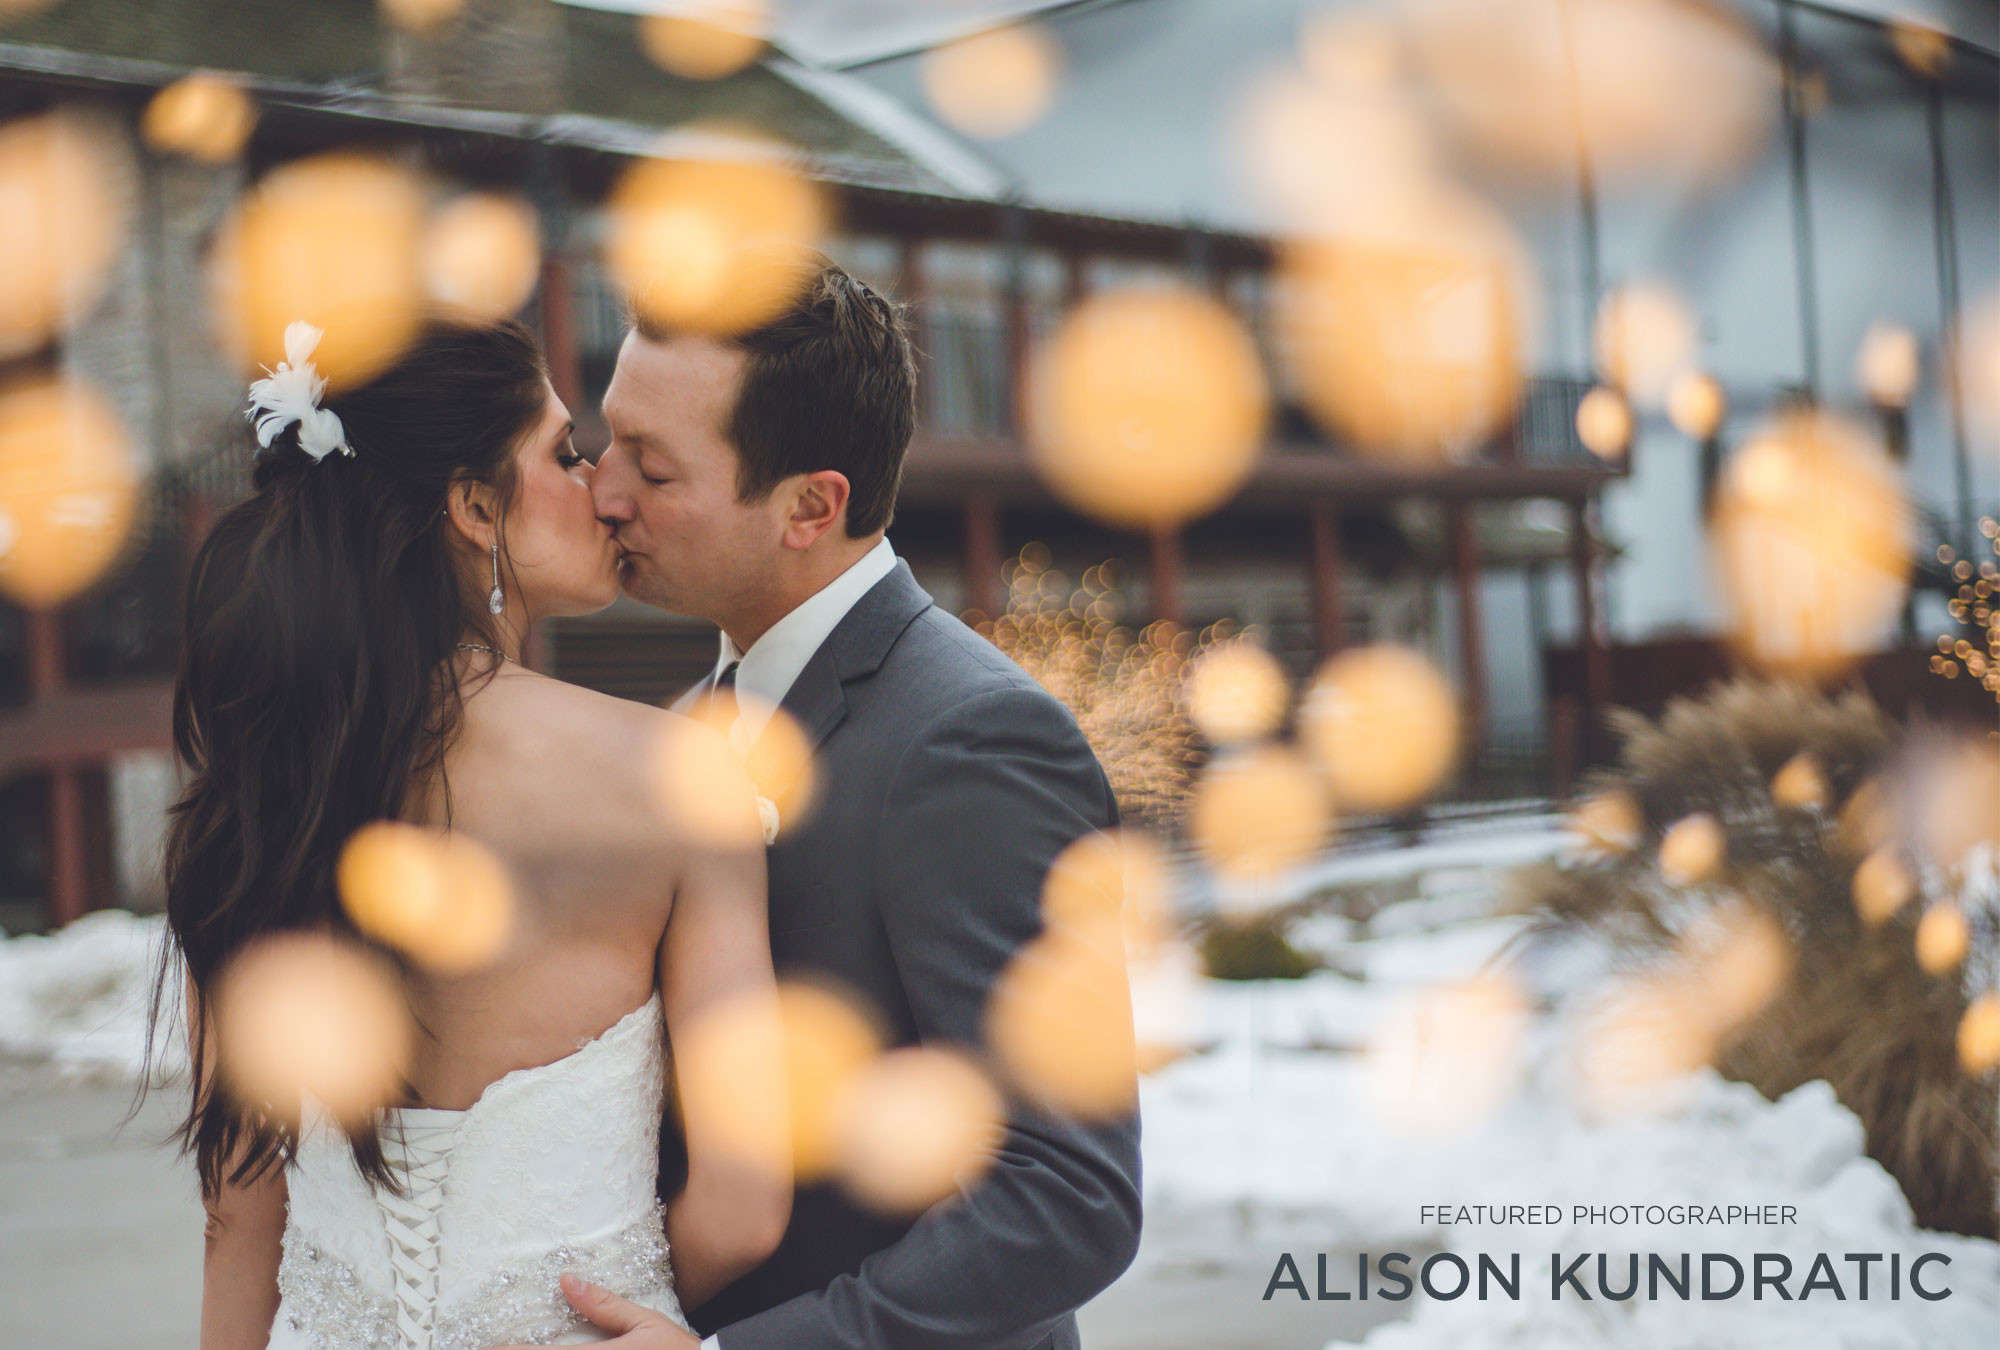 Alison Kundratic - Featured Photographer